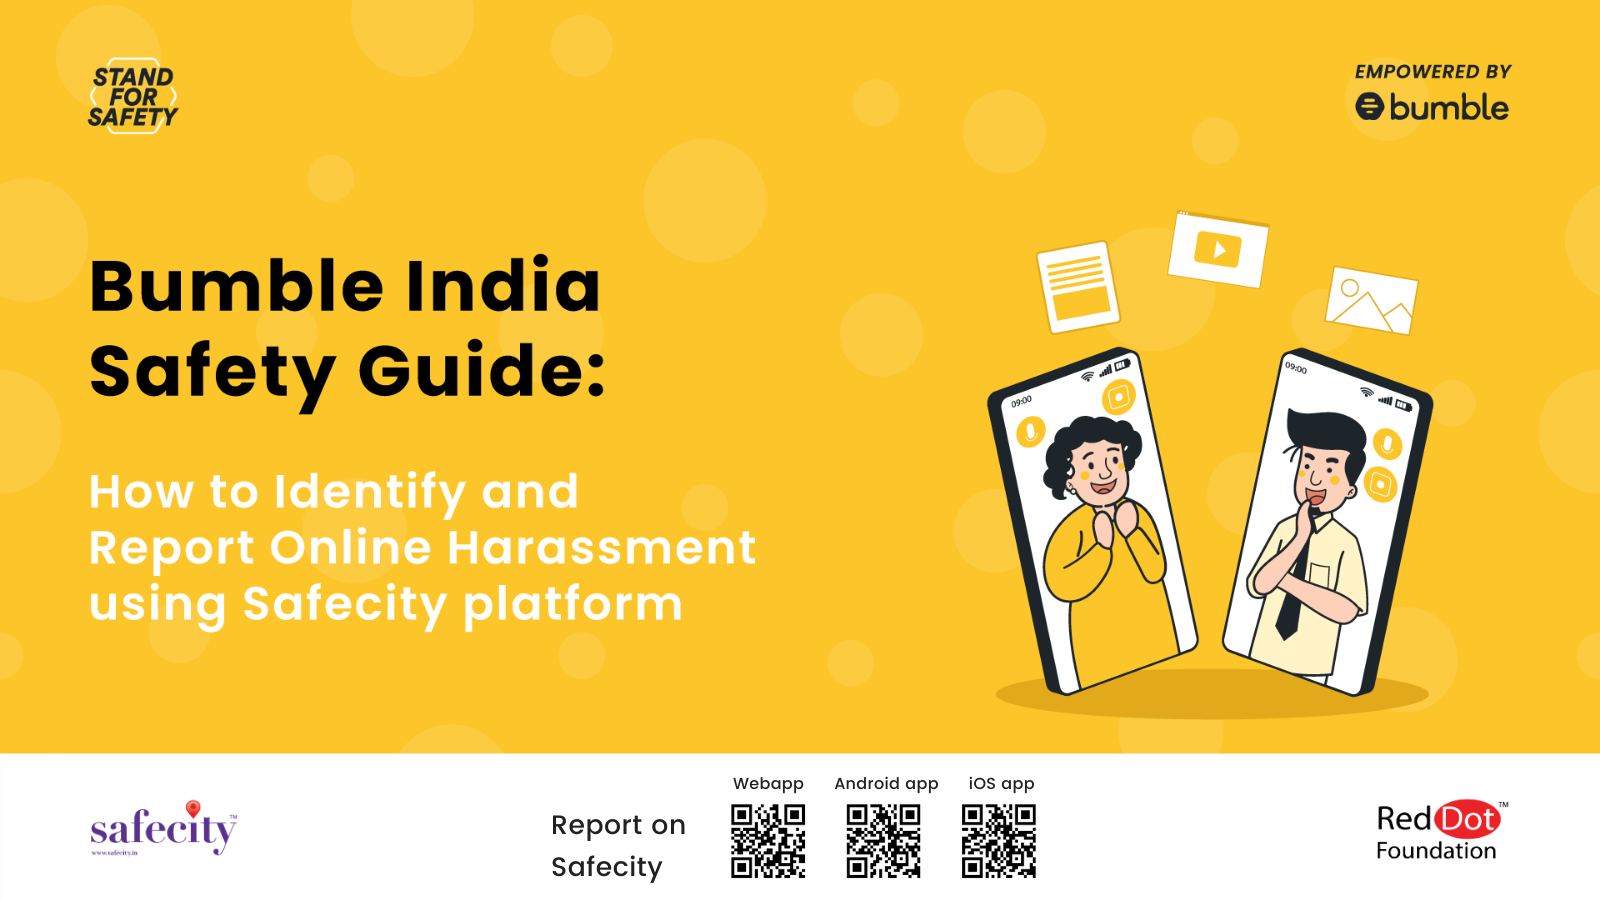 Bumble India Safety Guide